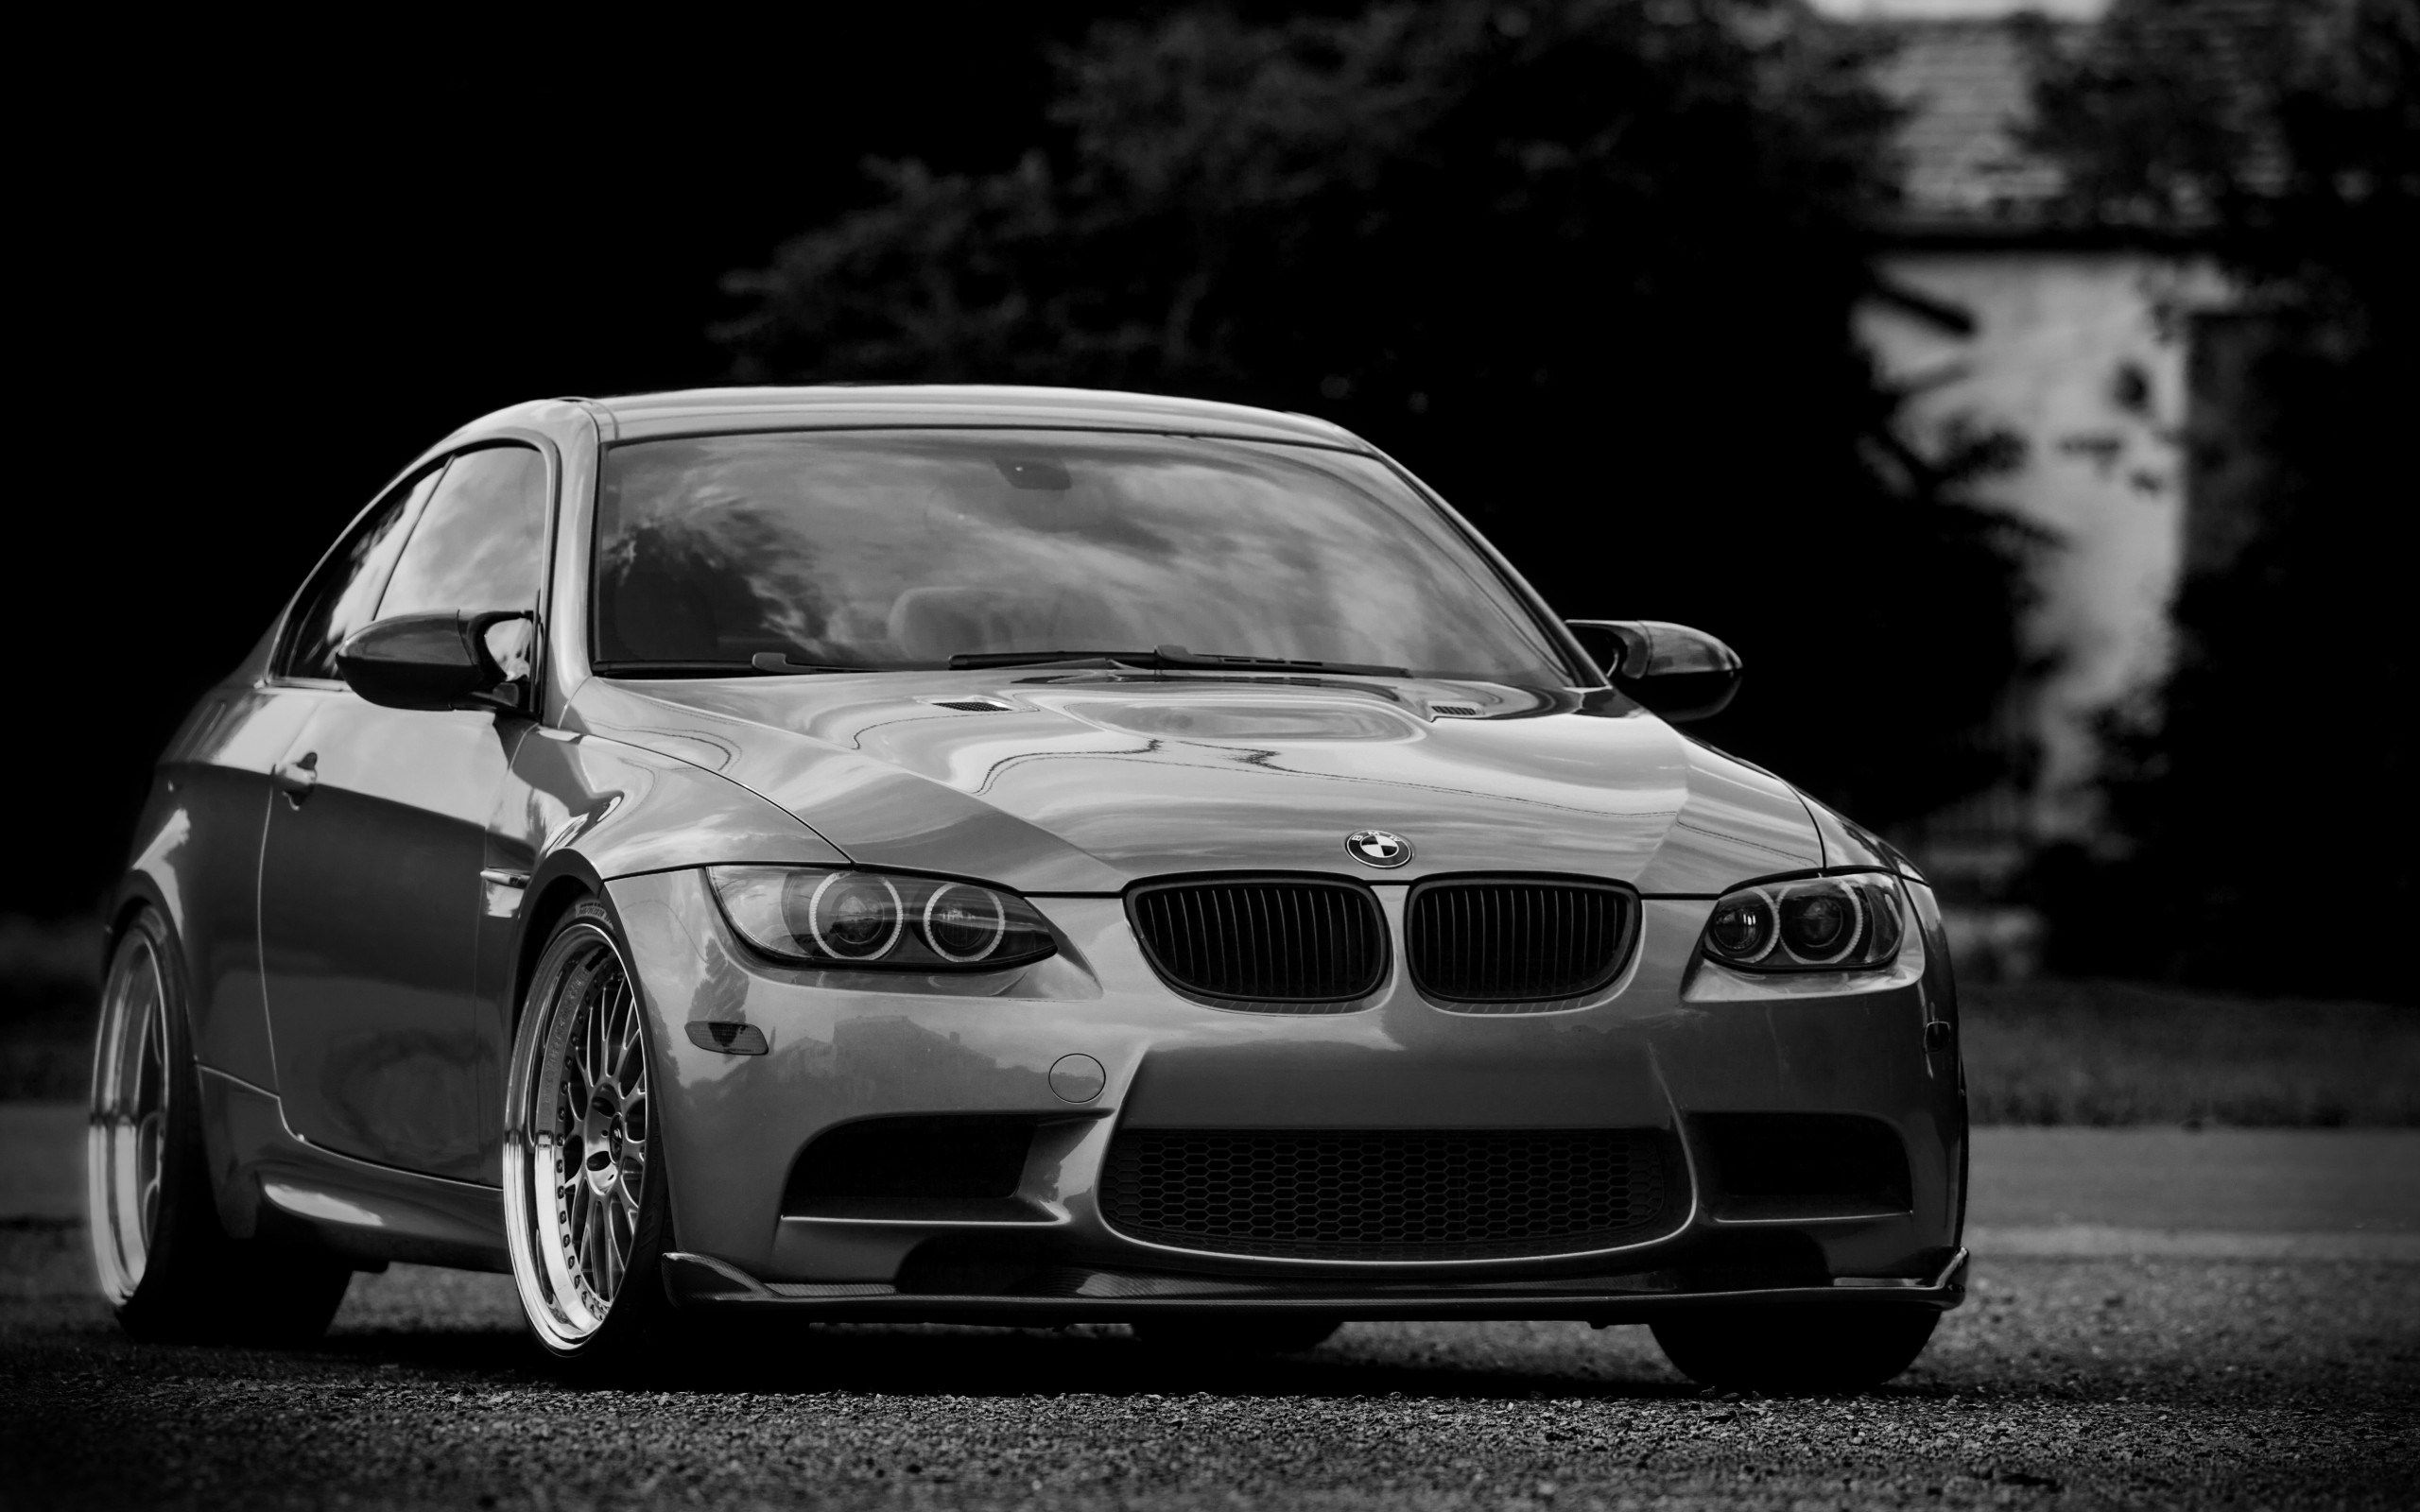 Bmw M3 E92 Wheels Google Search With Images Bmw Bmw M3